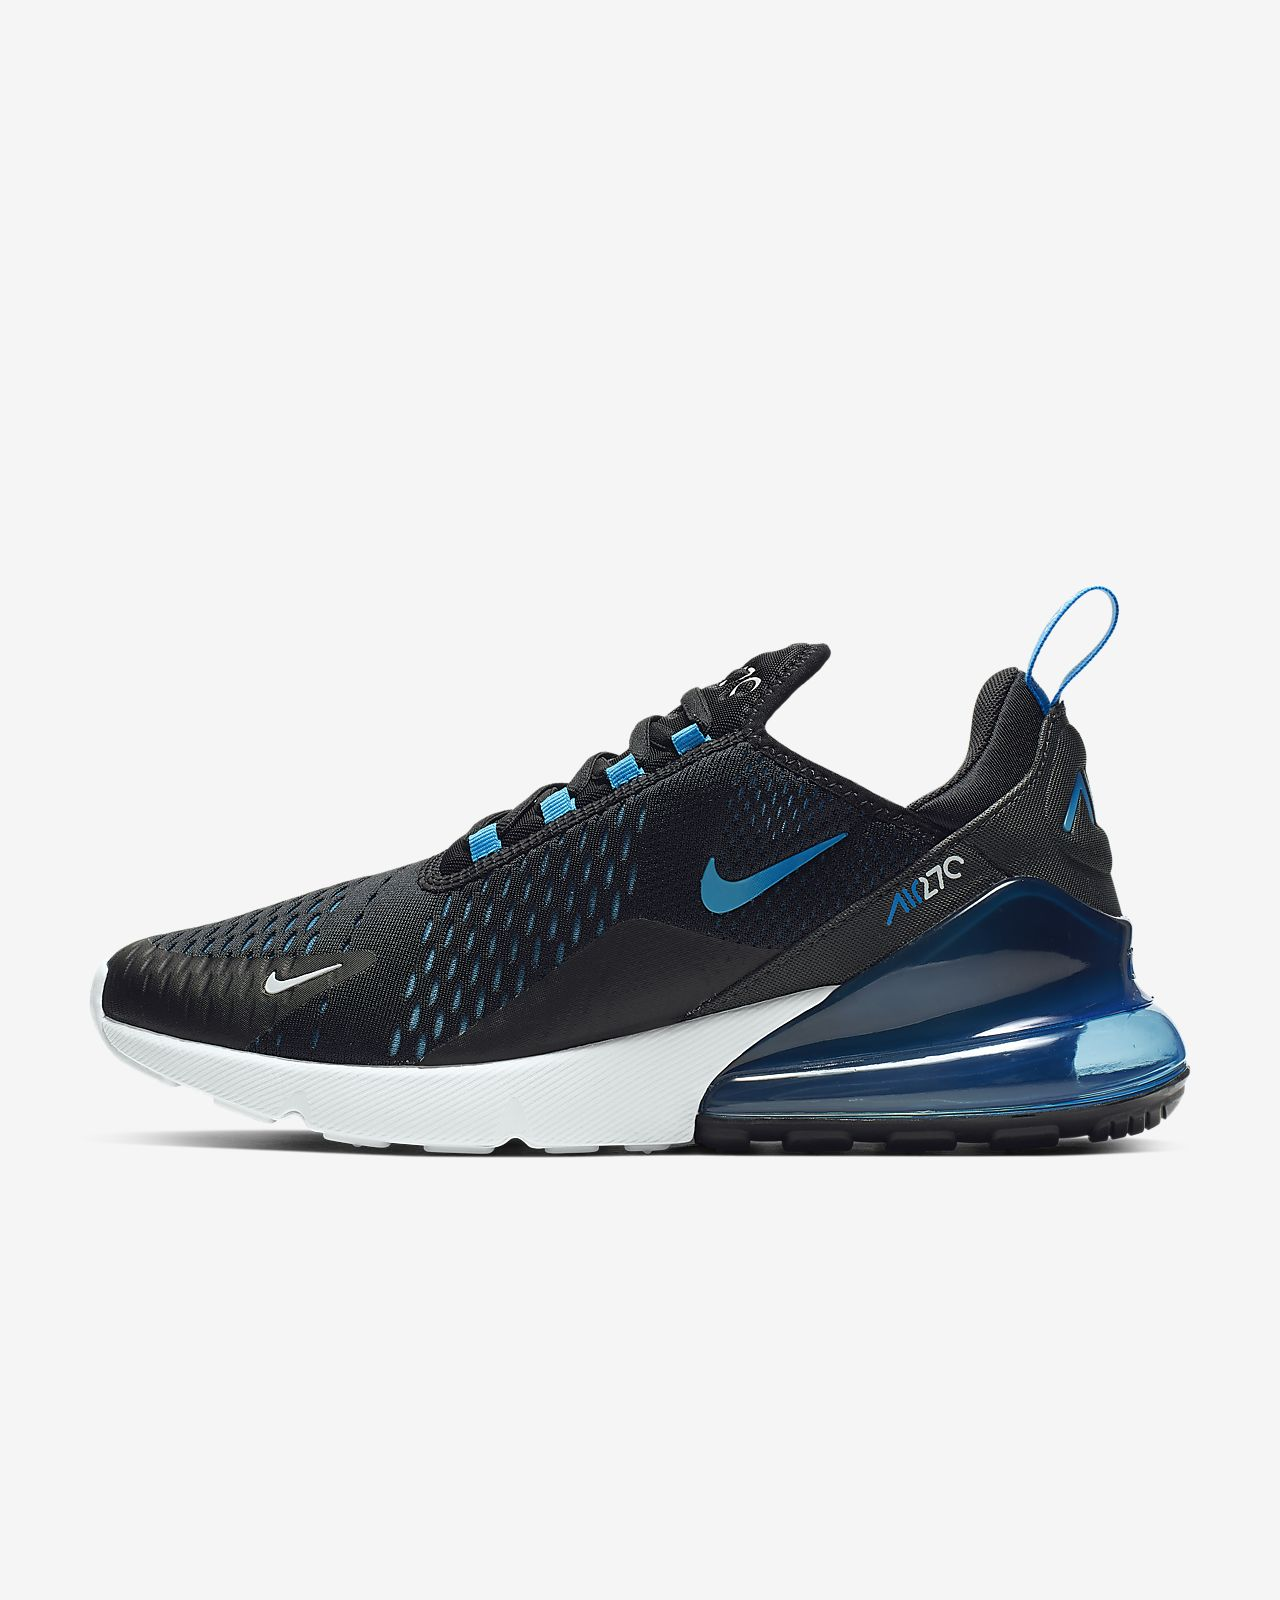 5dae5260264d Nike Air Max 270 Men s Shoe. Nike.com GB